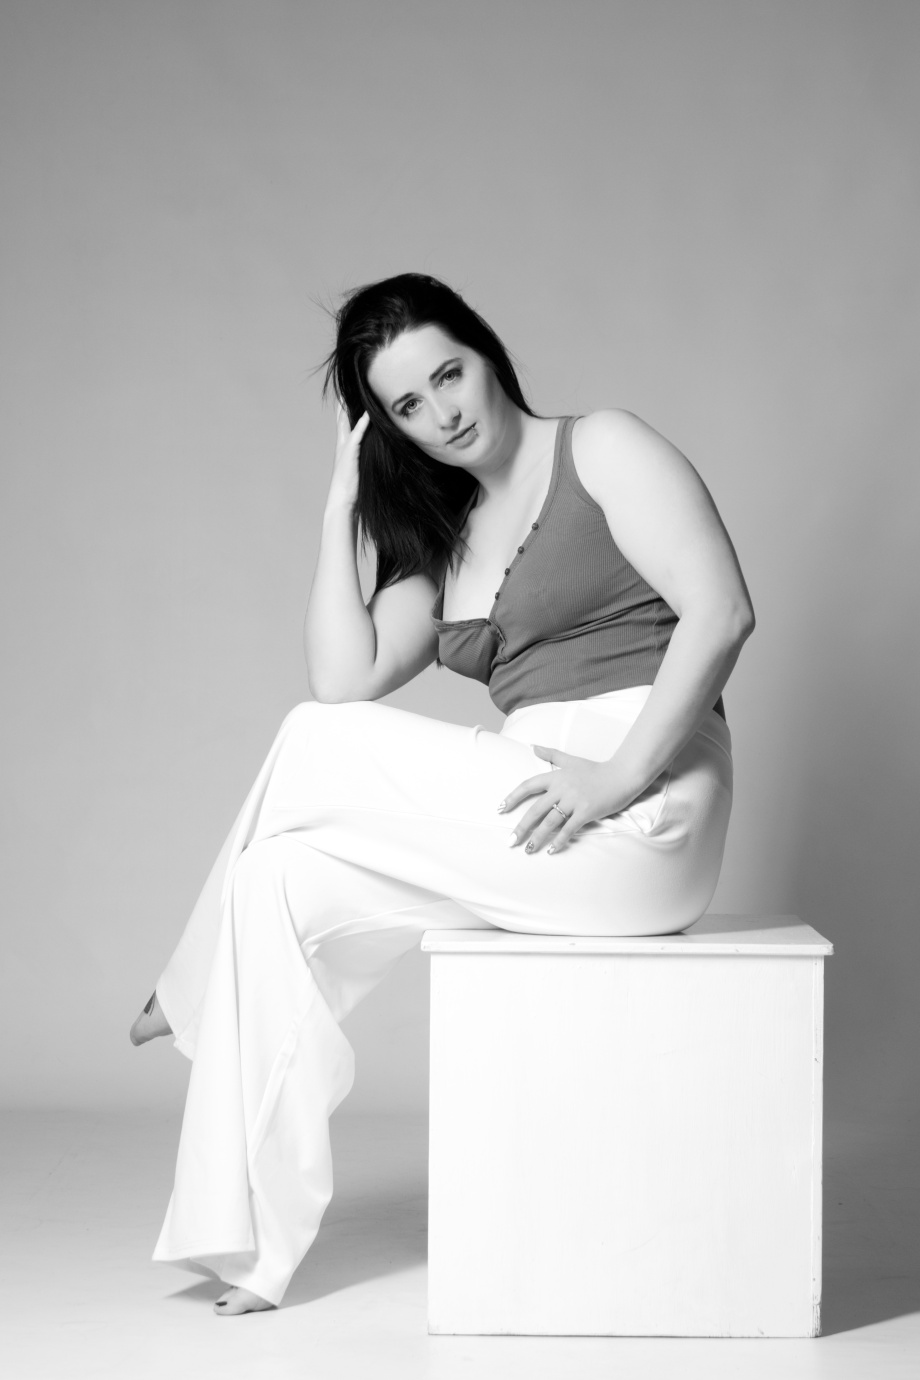 cork, glamour, photoshoot, studio, ireland, black and white